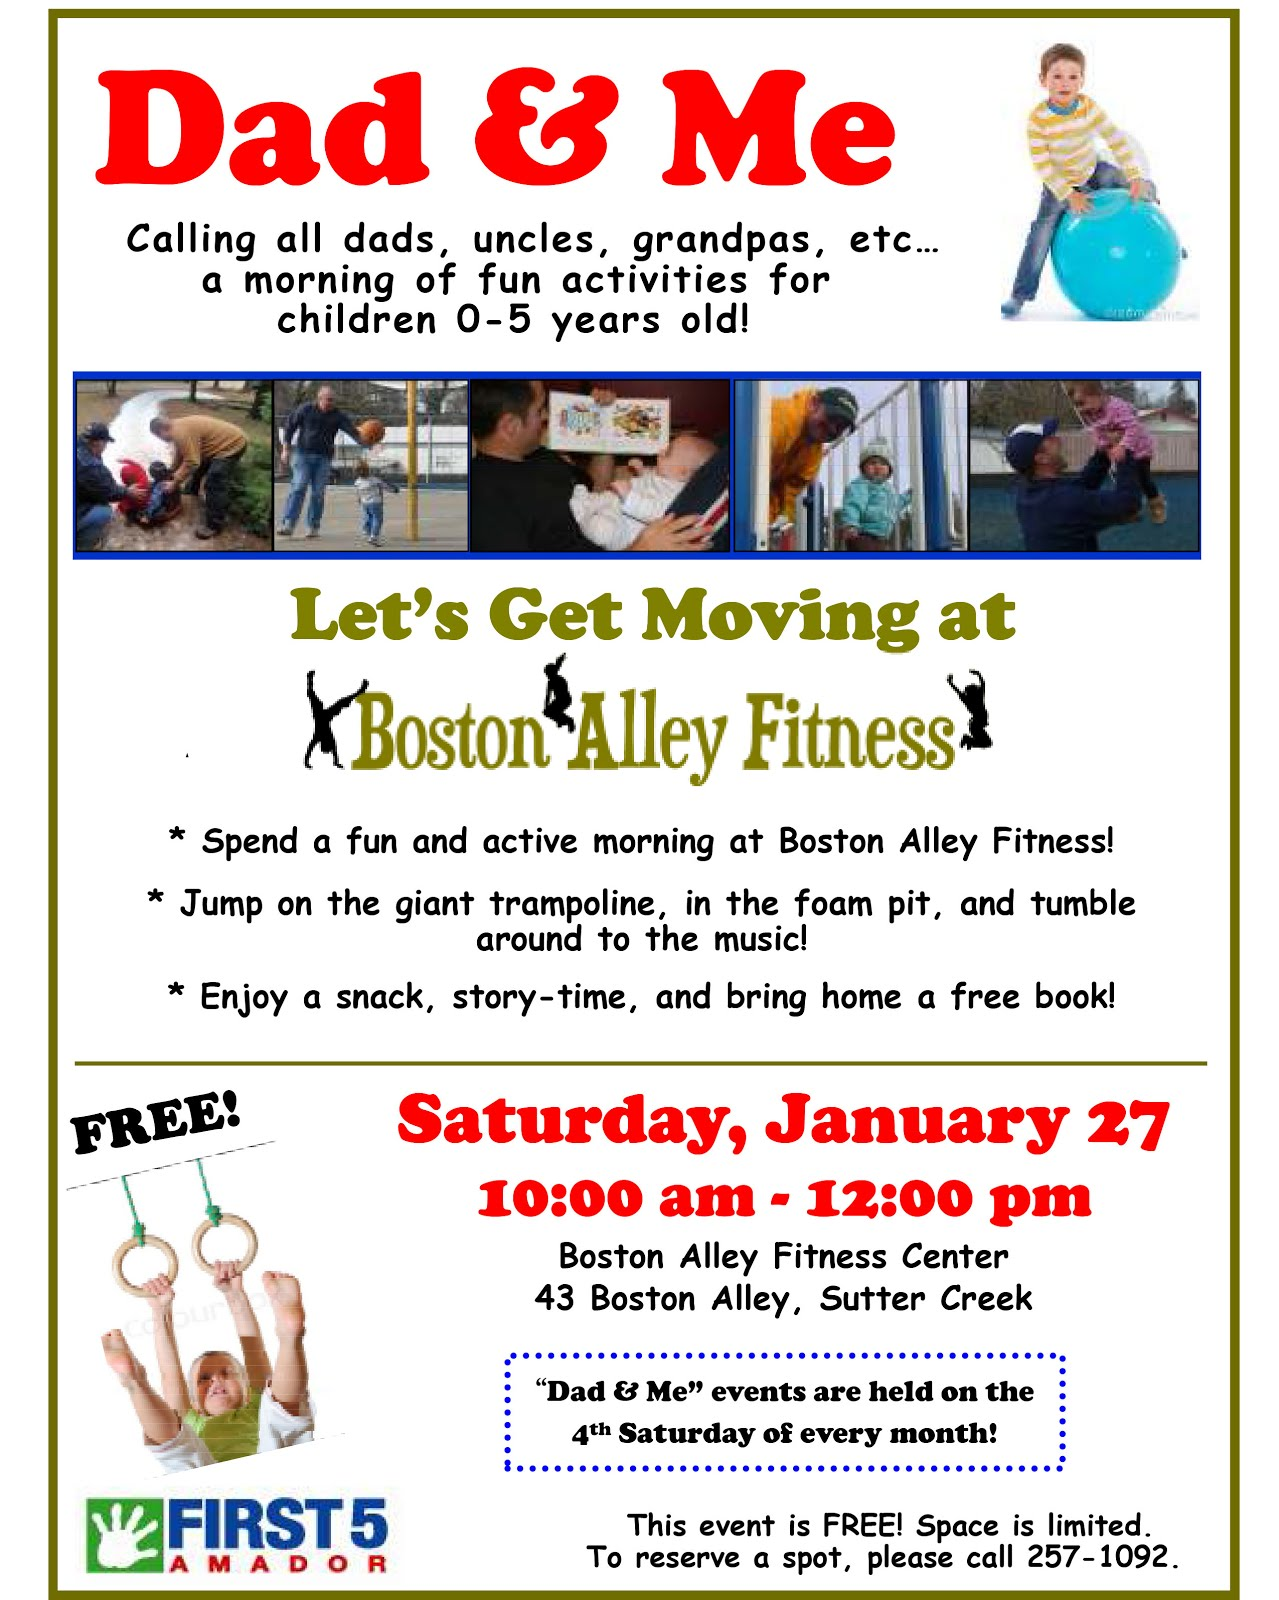 Dad & Me: Let's Get Moving at Boston Alley Fitness - Sat Jan 27